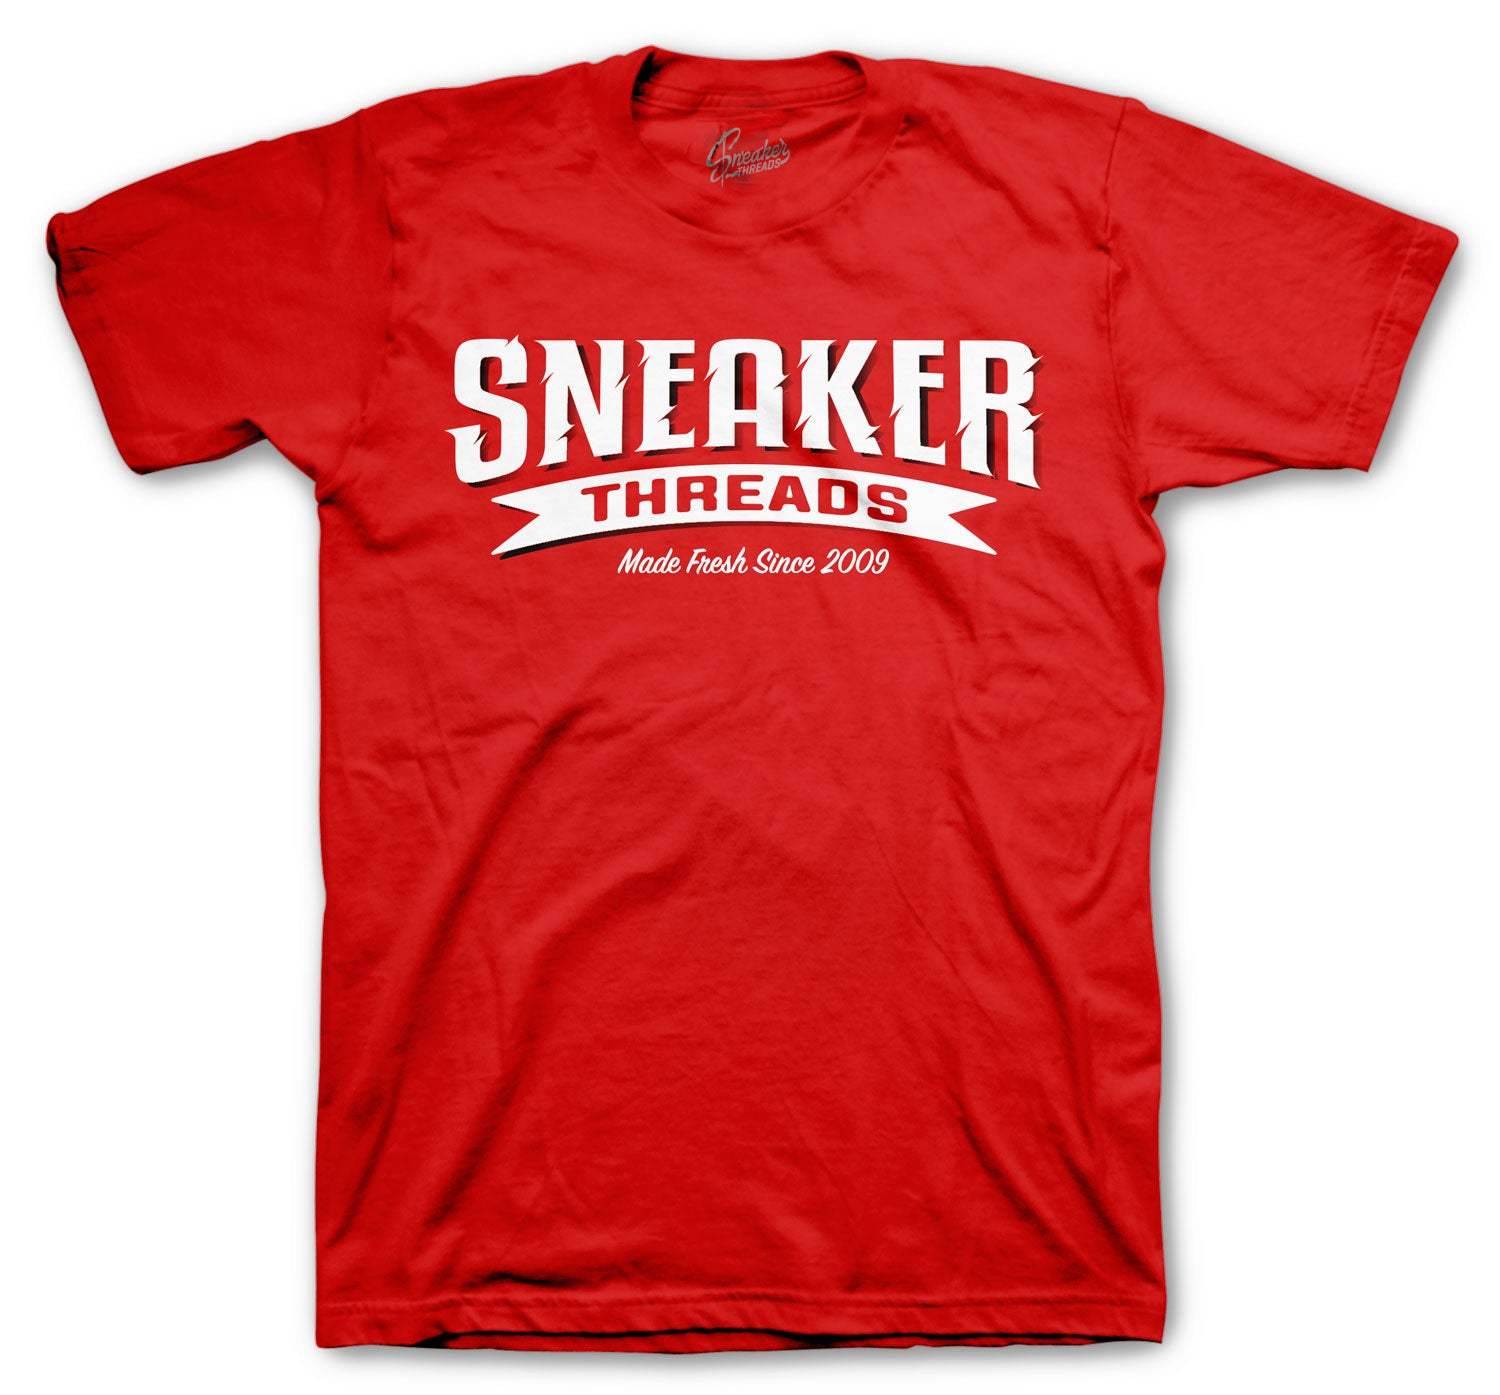 gym red Jordan sneaker have matching mens t shirt